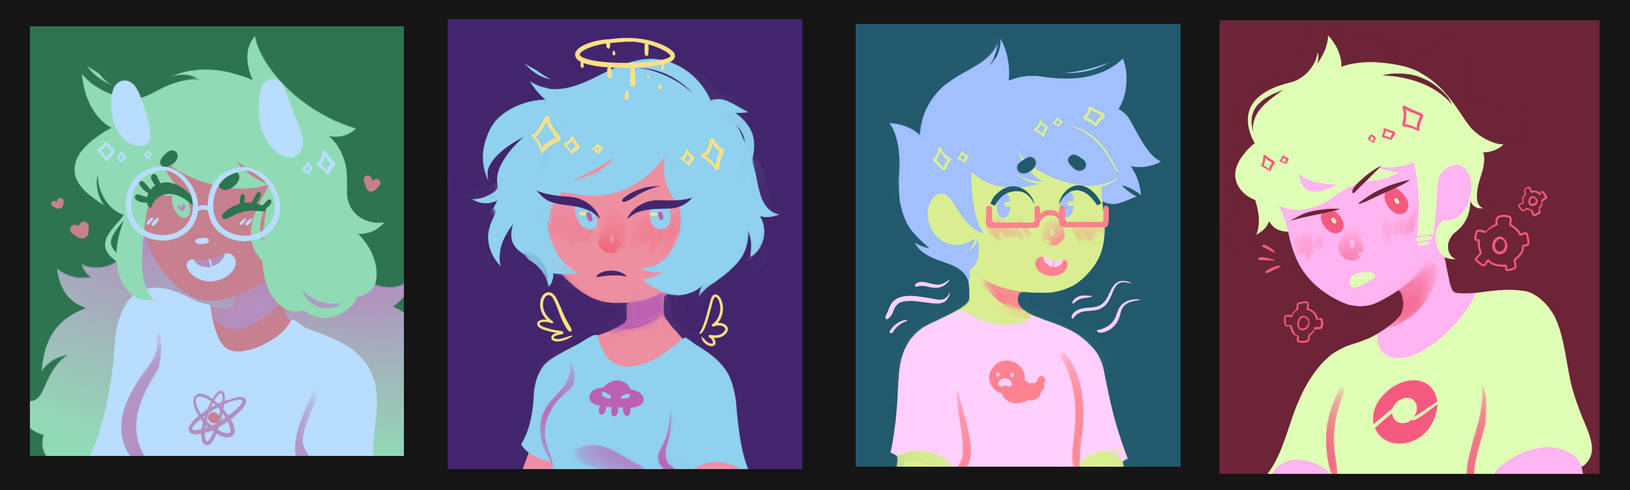 beta kids palette paintings